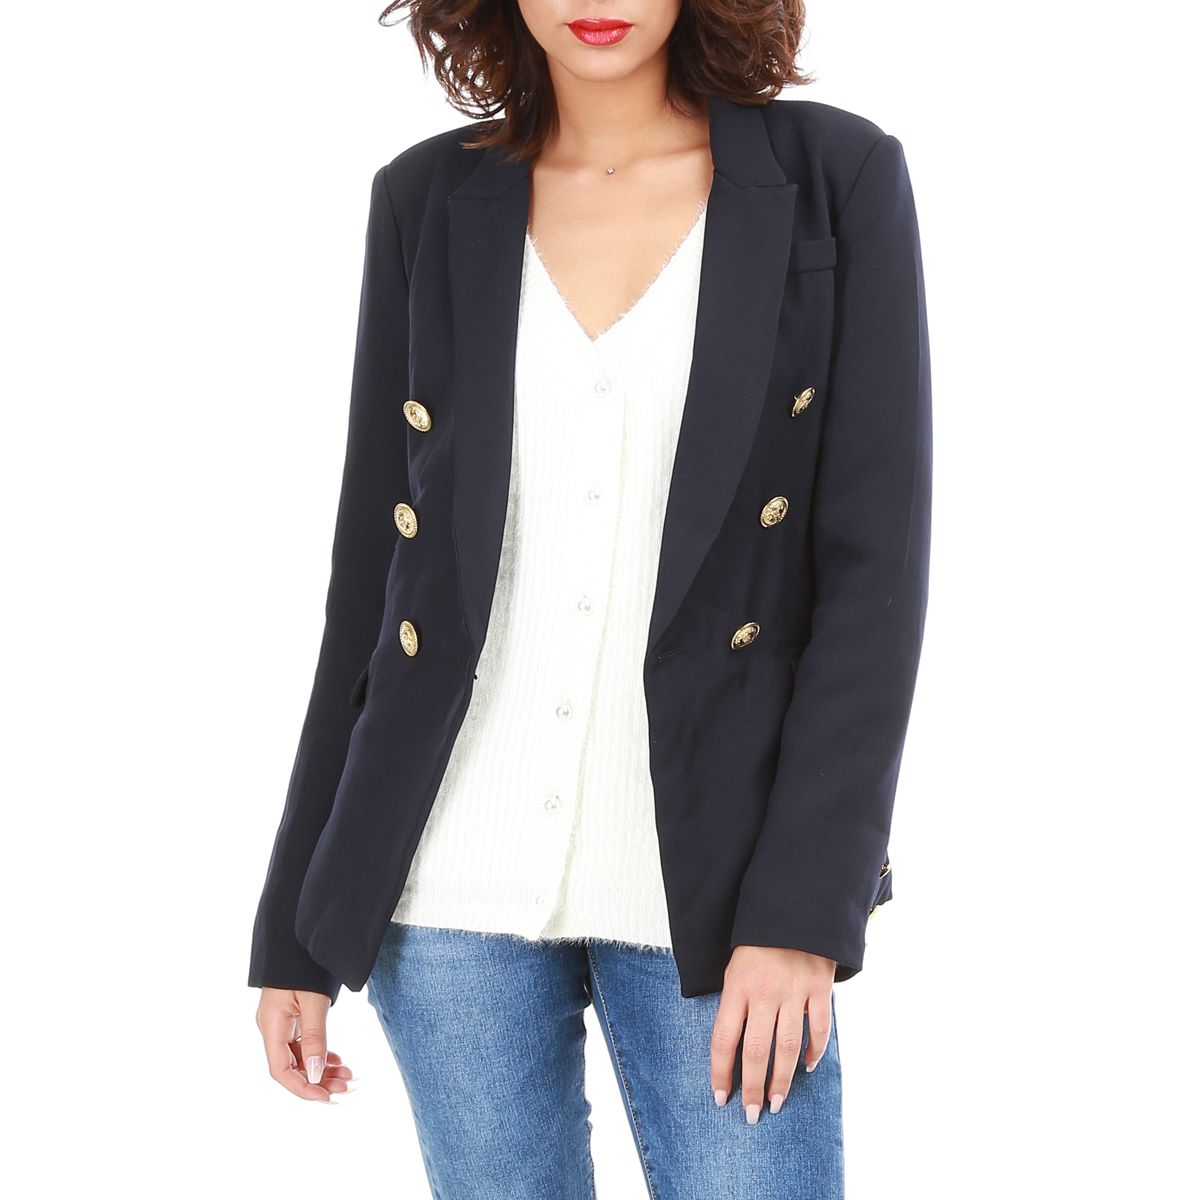 veste blazer bleu marine courte style officier femme pas cher la modeuse. Black Bedroom Furniture Sets. Home Design Ideas